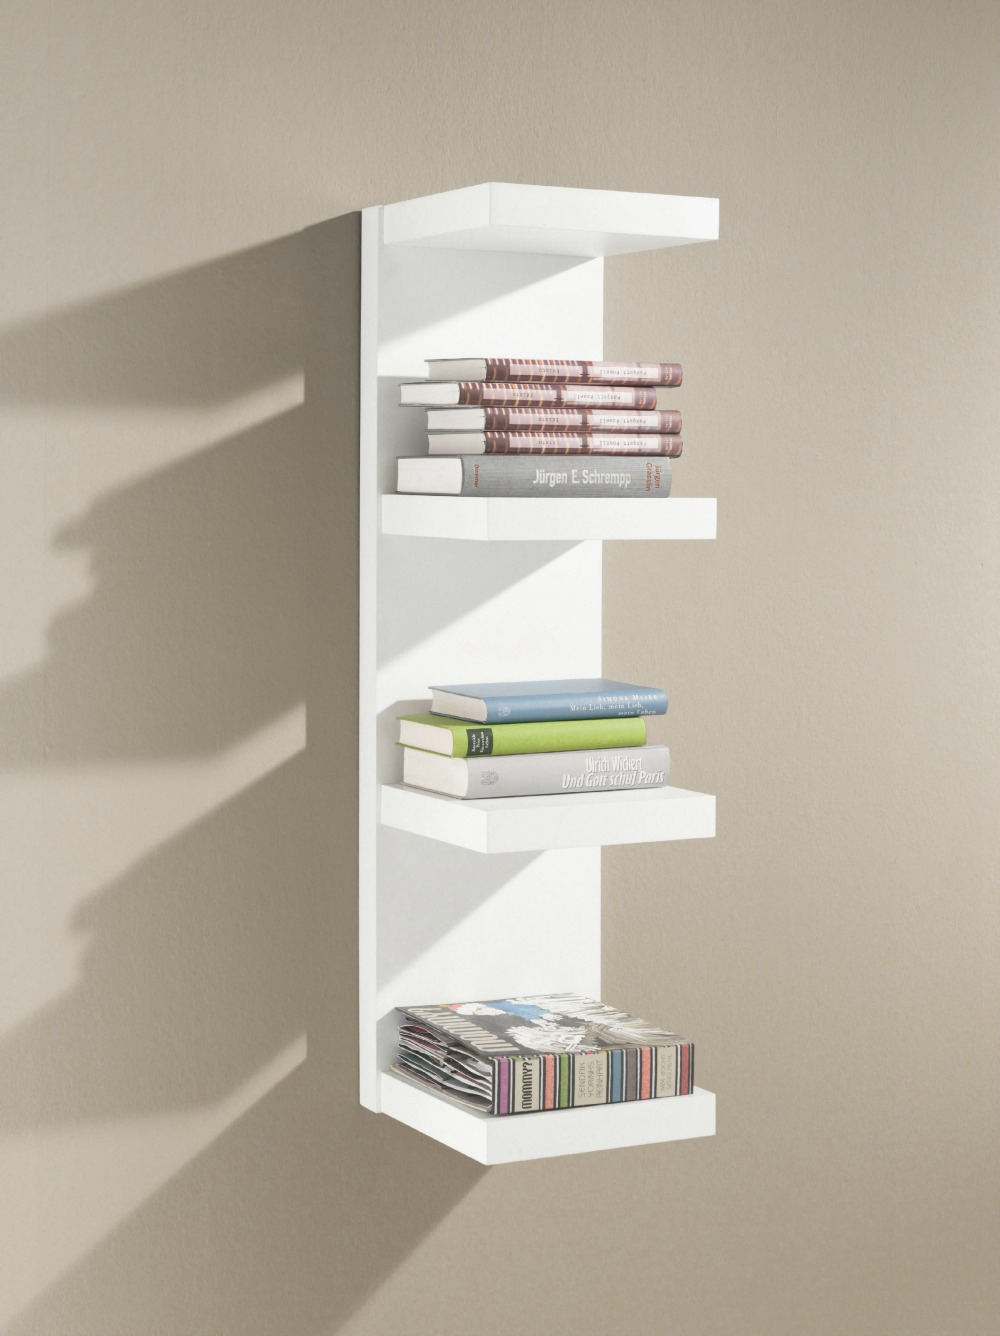 floating shelves wall great variety sizes domino white inch deep shelf installing linoleum tiles over plywood under sink storage for pedestal sinks heart ikea shoe cabinet kitchen